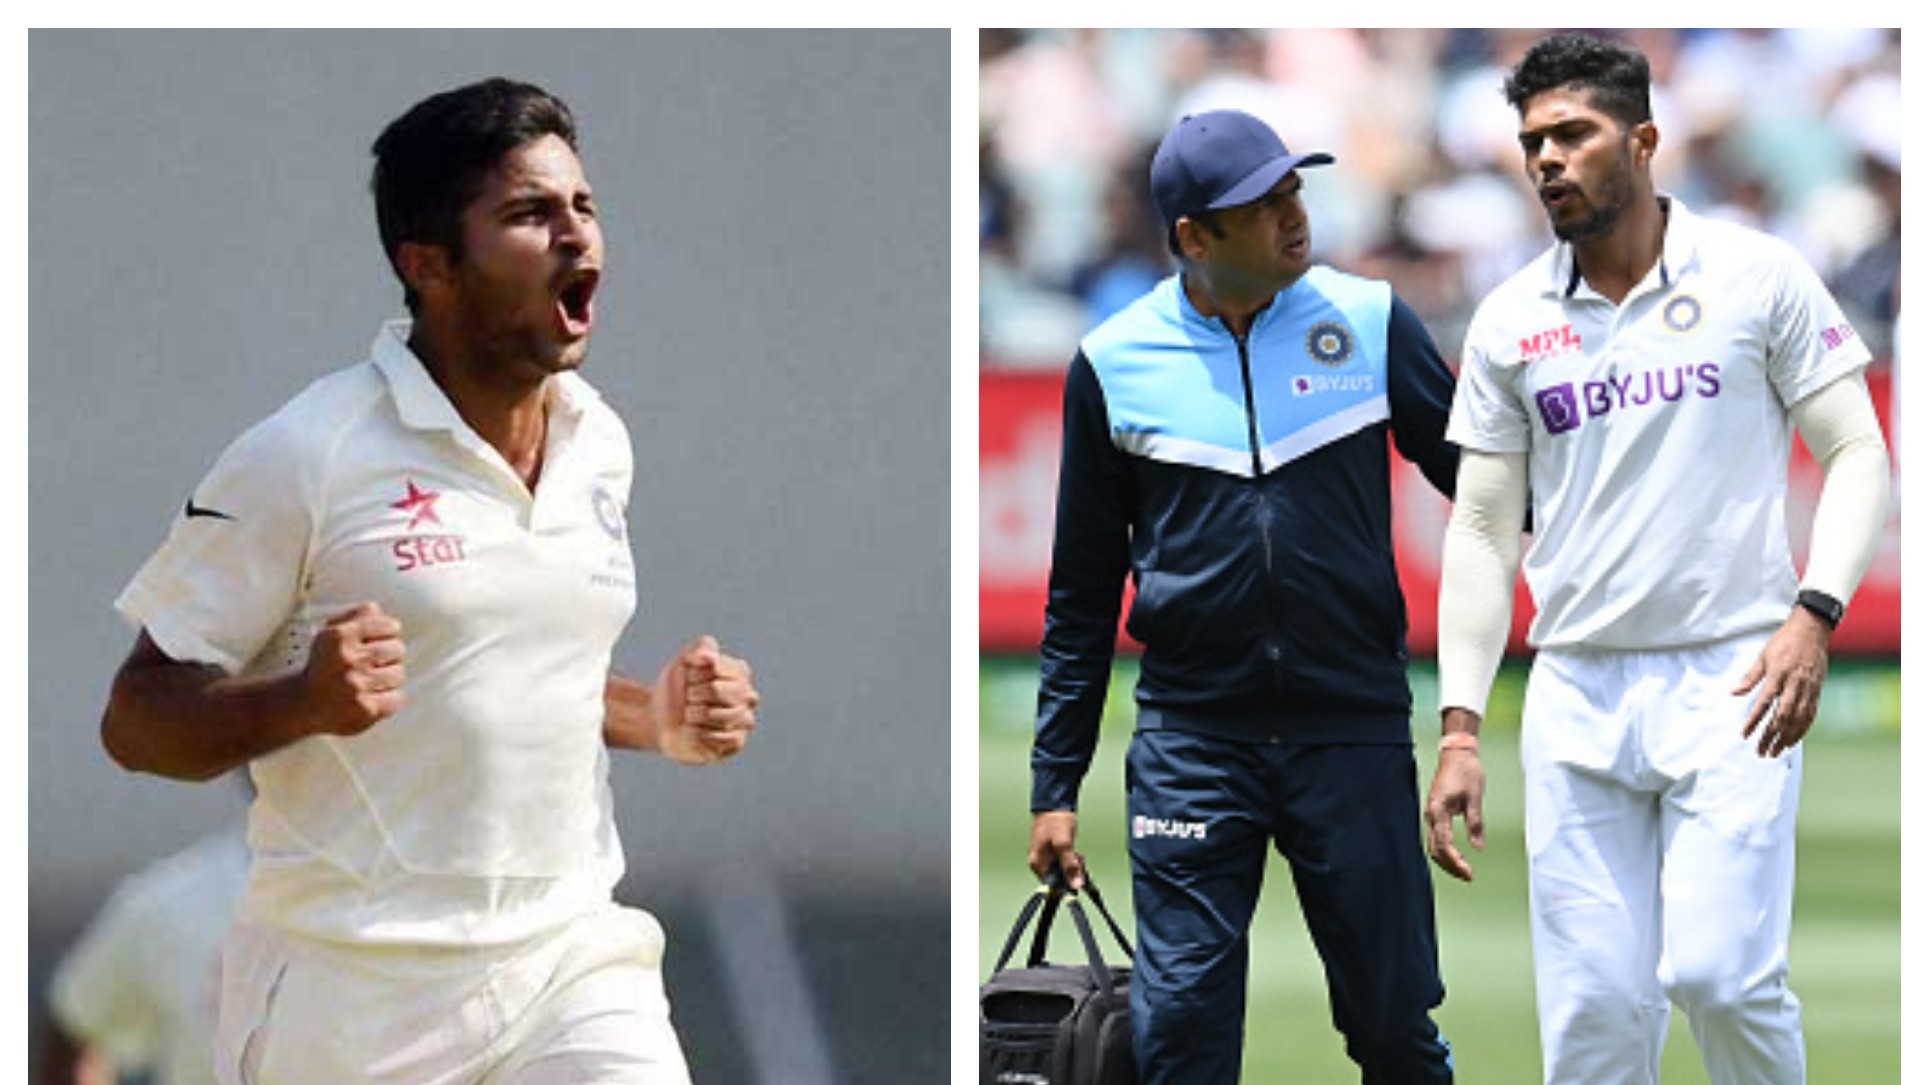 AUS v IND 2020-21: Shardul Thakur likely to get the nod for third Test with Umesh Yadav ruled out of the series